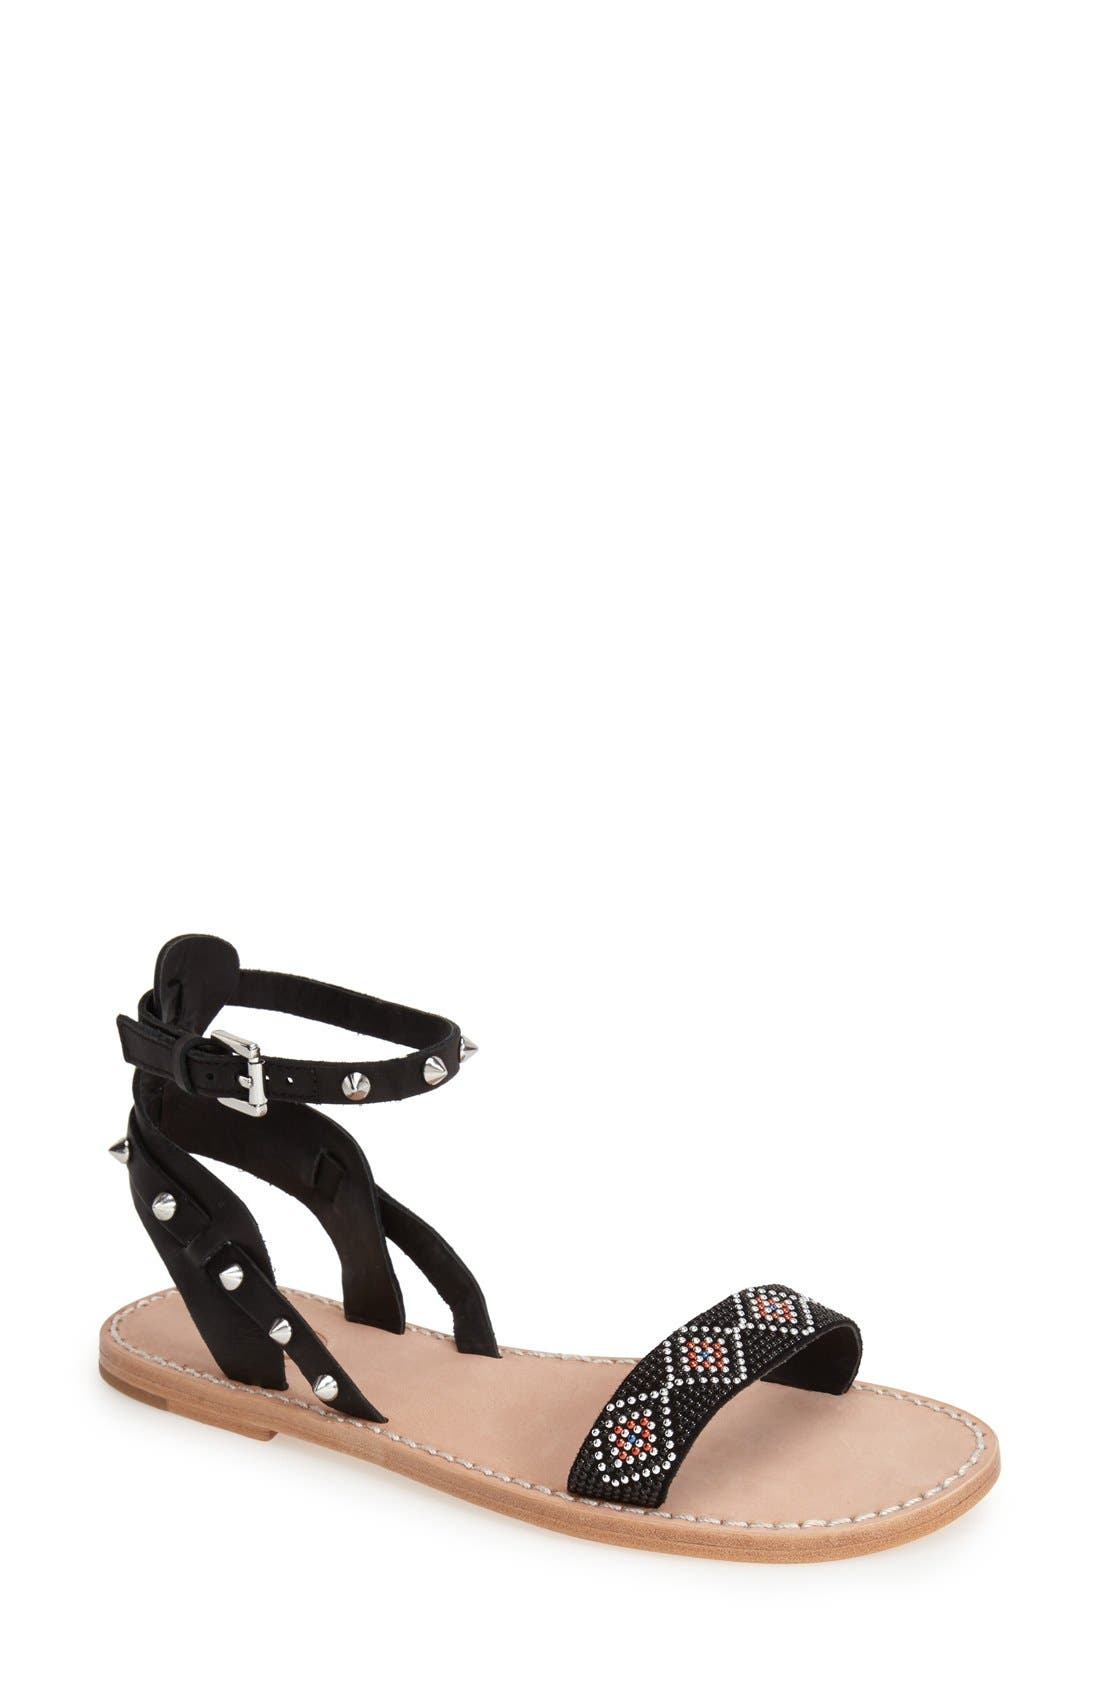 'Pearl' Studded Leather Sandal,                         Main,                         color, 001